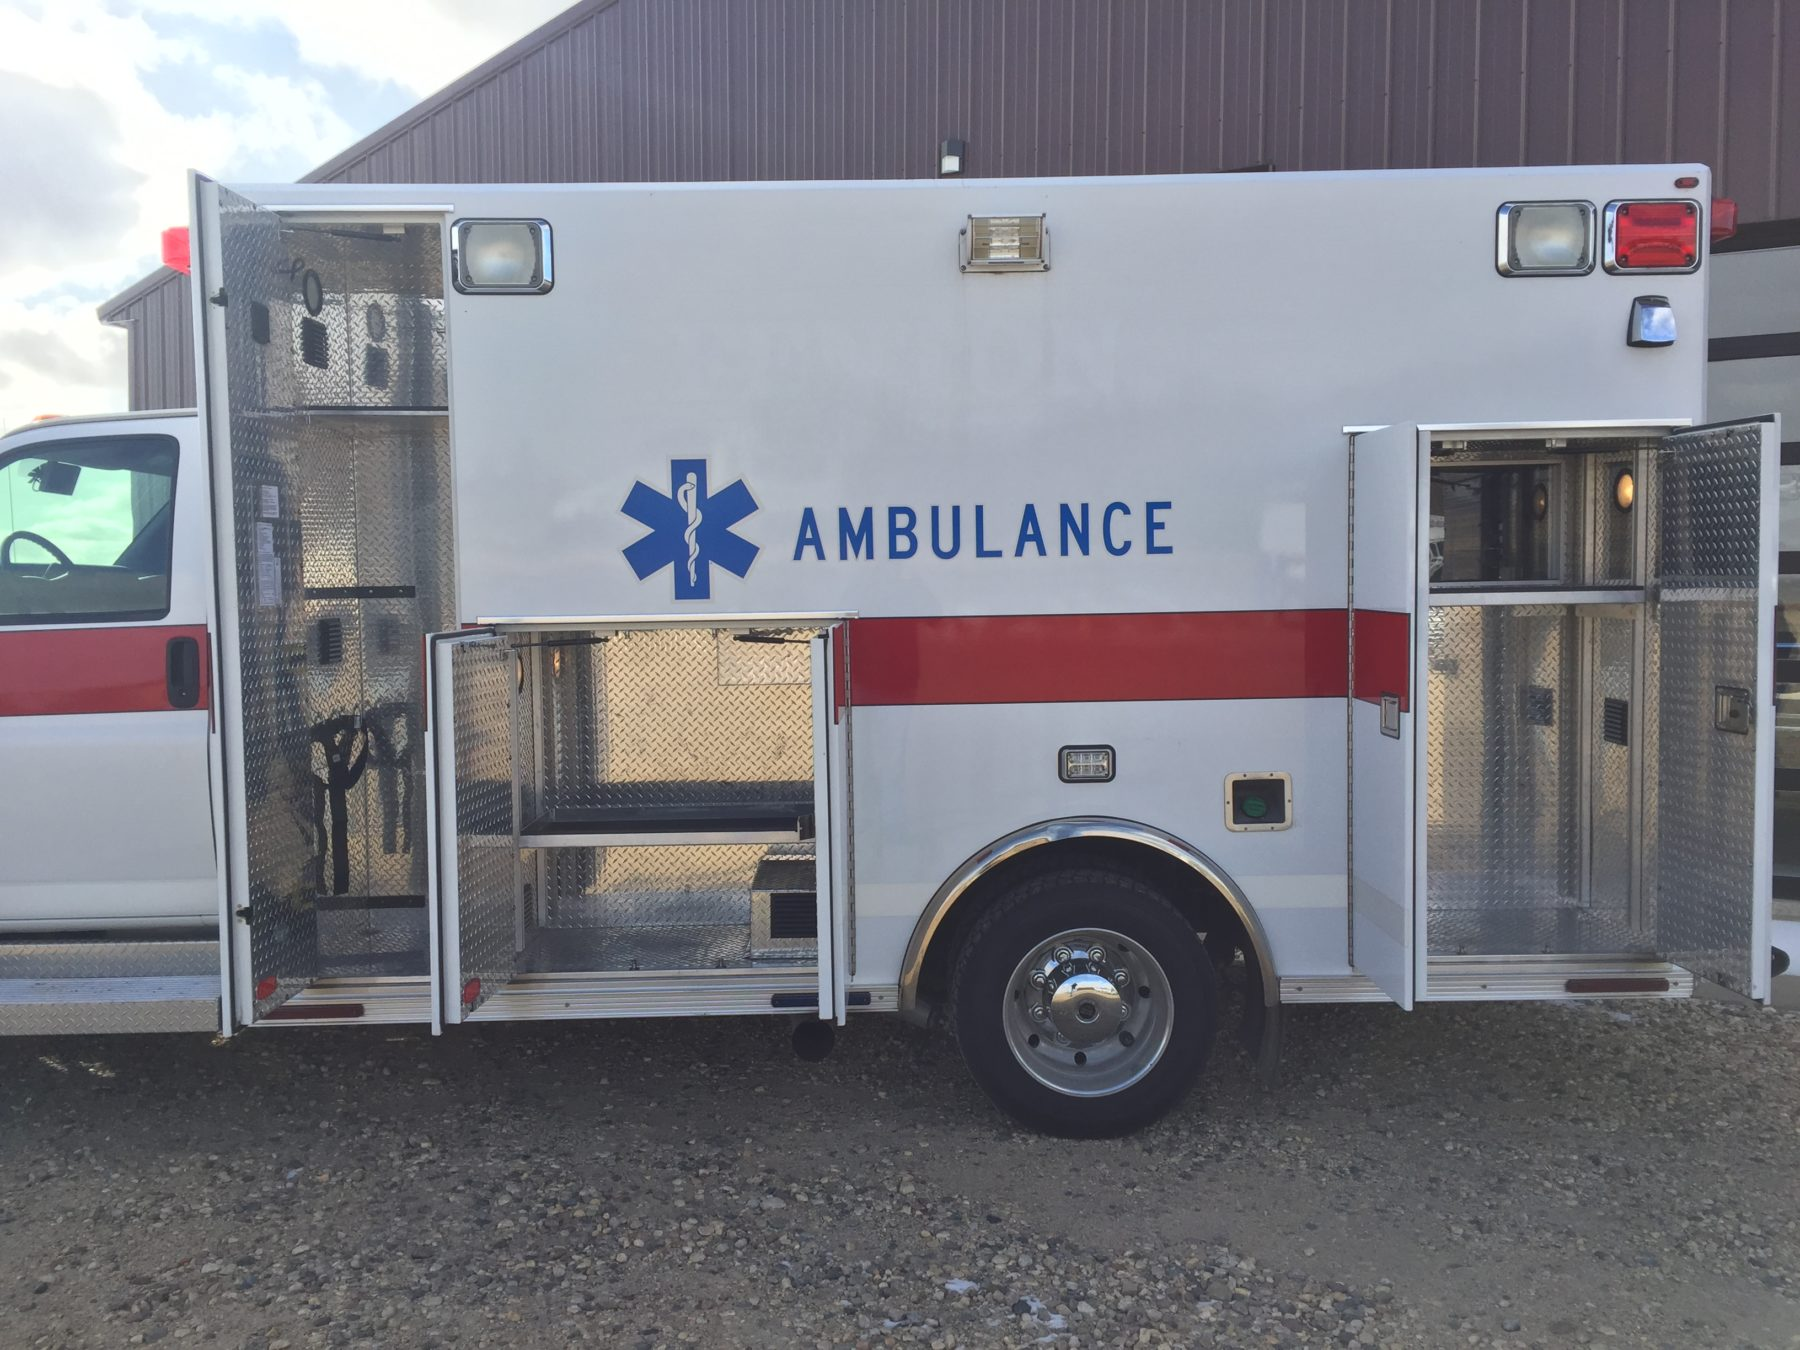 2009 Chevrolet C4500 Heavy Duty Ambulance For Sale – Picture 6